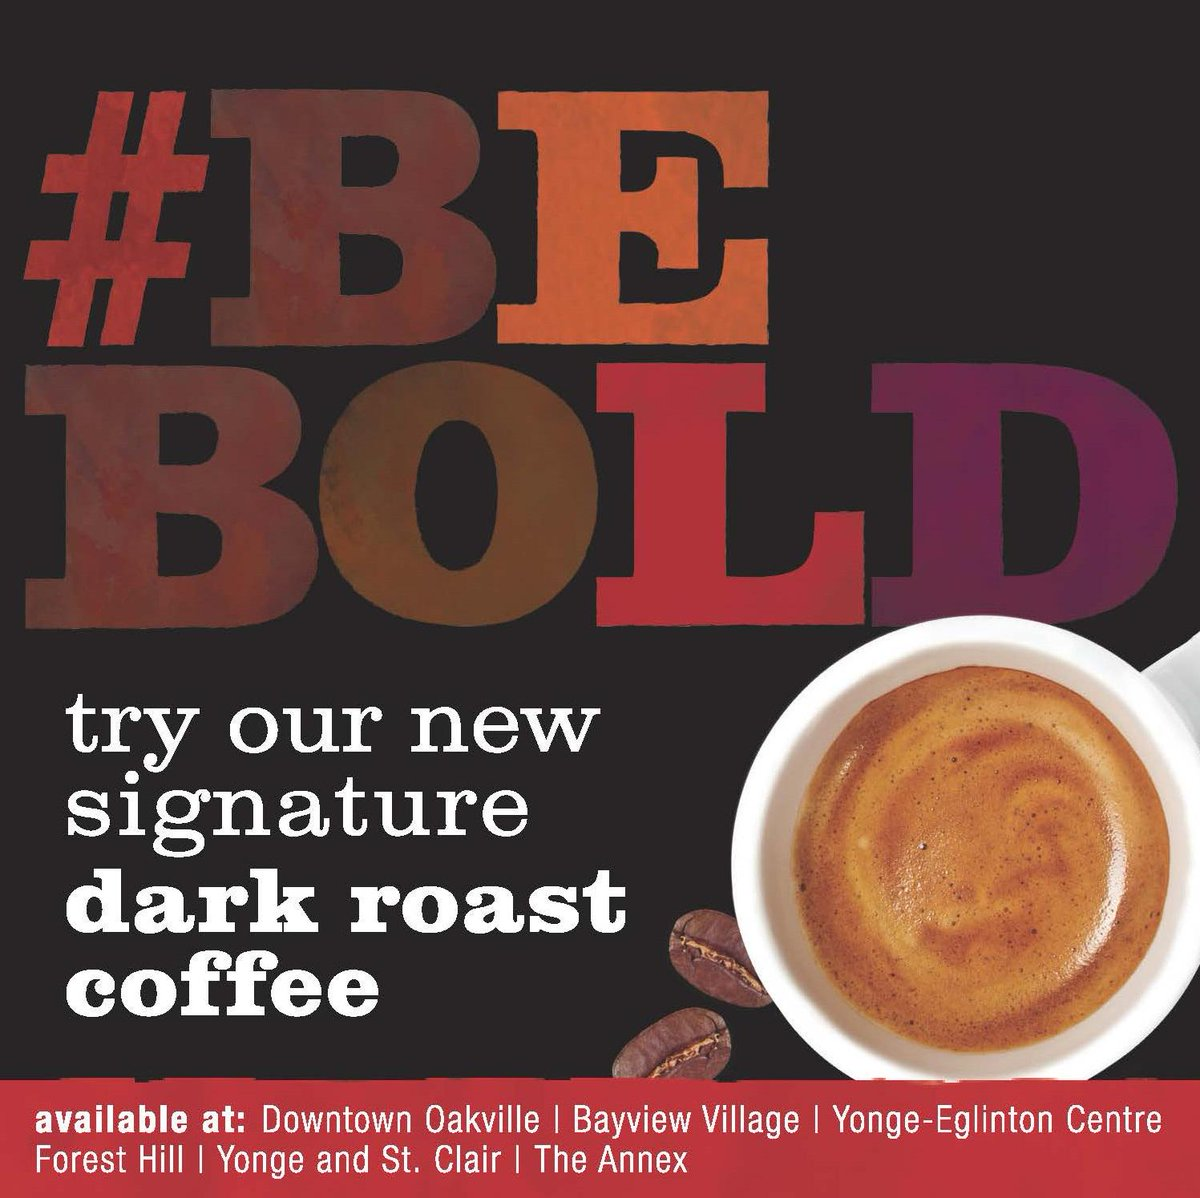 We have a new signature #darkroast coffee, aroma BOLD. First 10 RTs can treat a friend on us! #bebold http://t.co/plXgloG7Hk